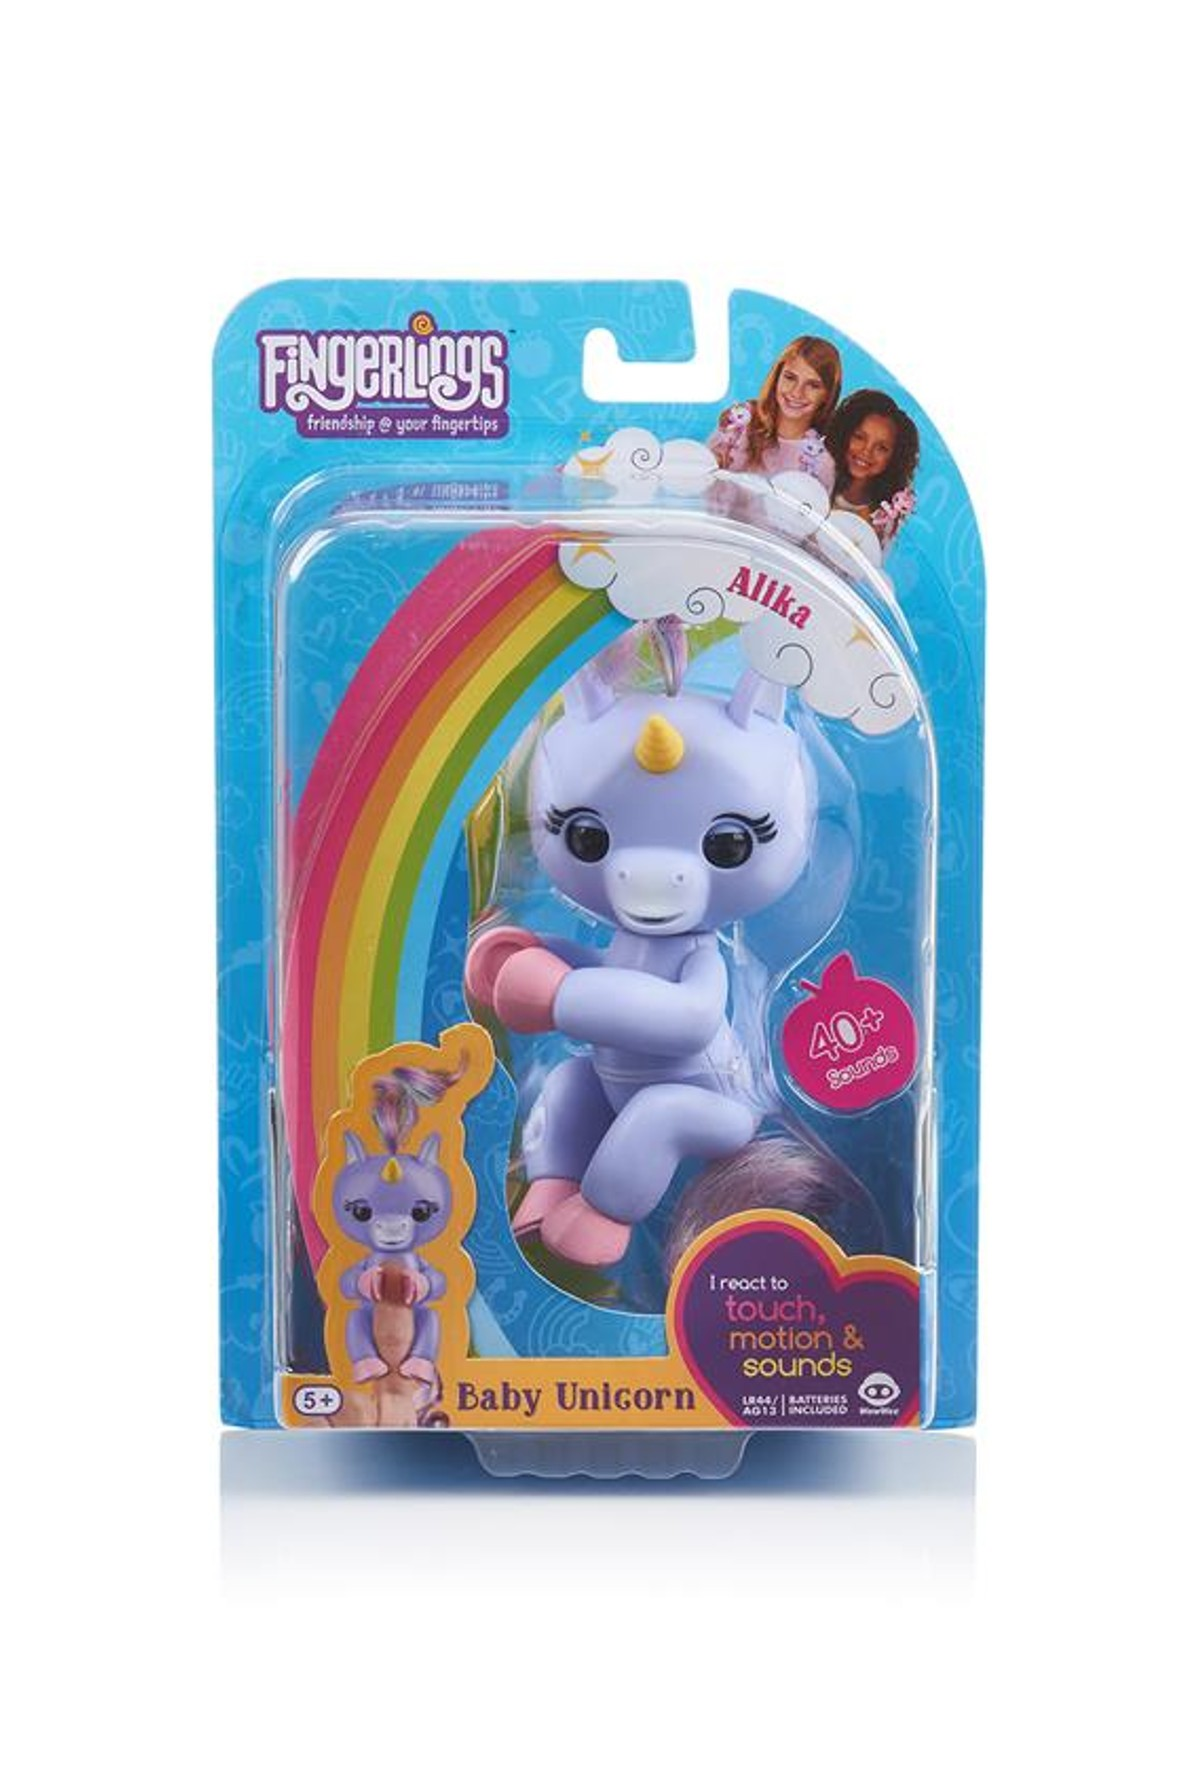 Fingerlings Jednorożec Alika